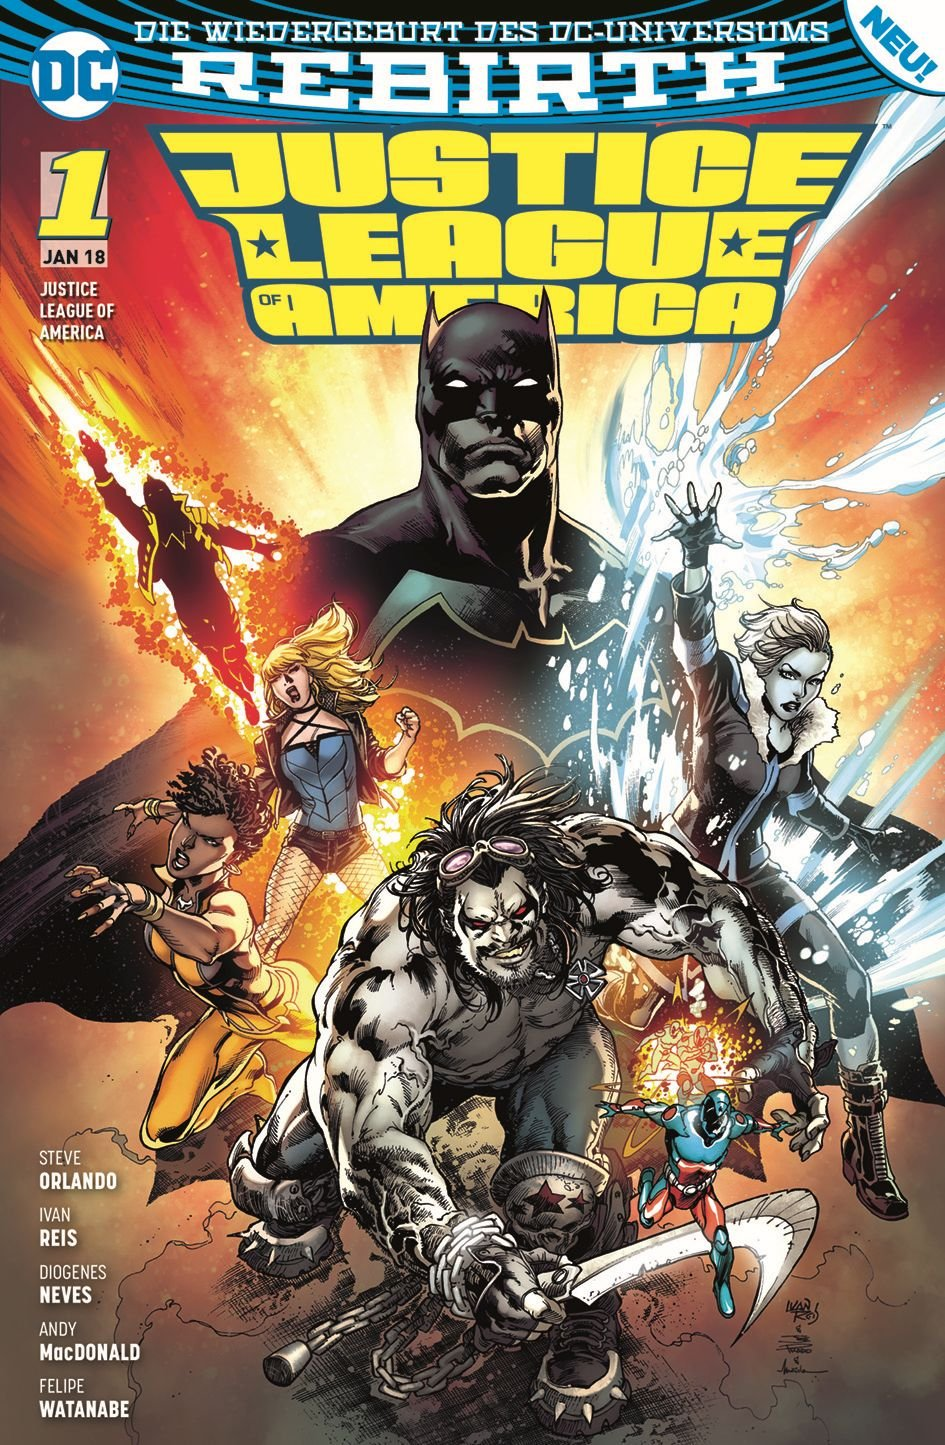 Justice League of America: Bd. 1: Die Extremists